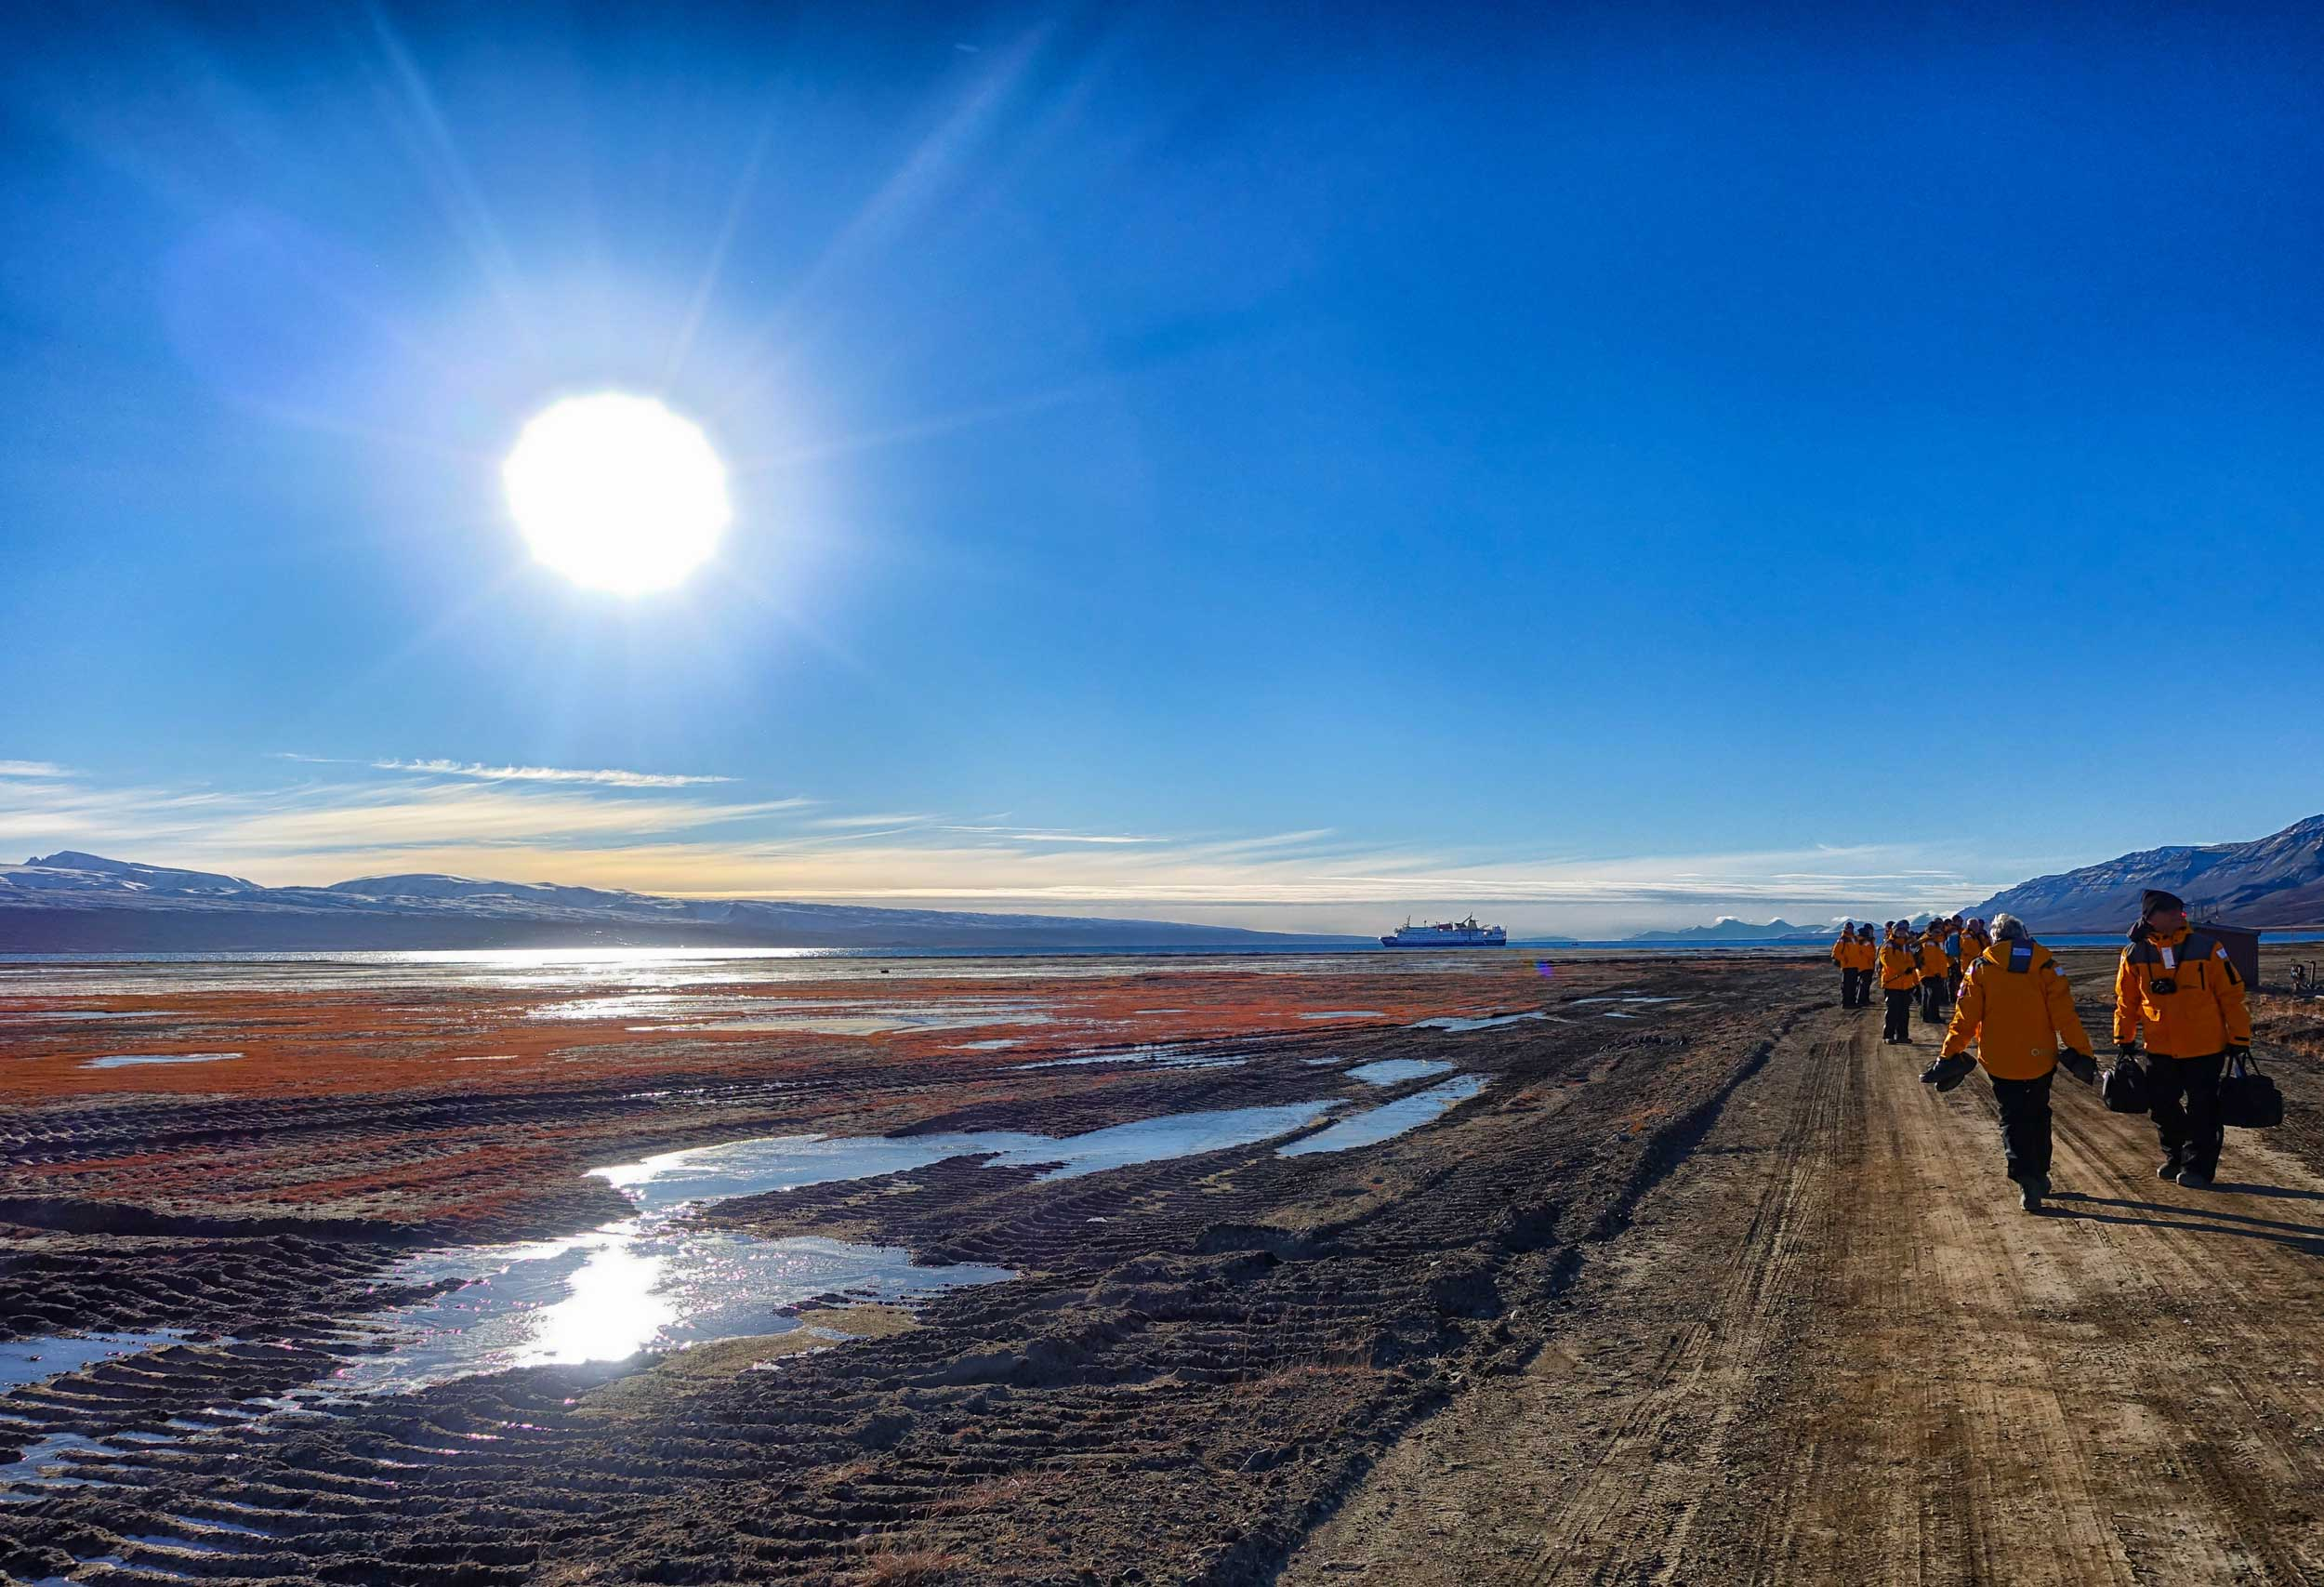 Group walking across flat, barren terrain, a very bright sun and a ship on the sea in the distance, Greenland